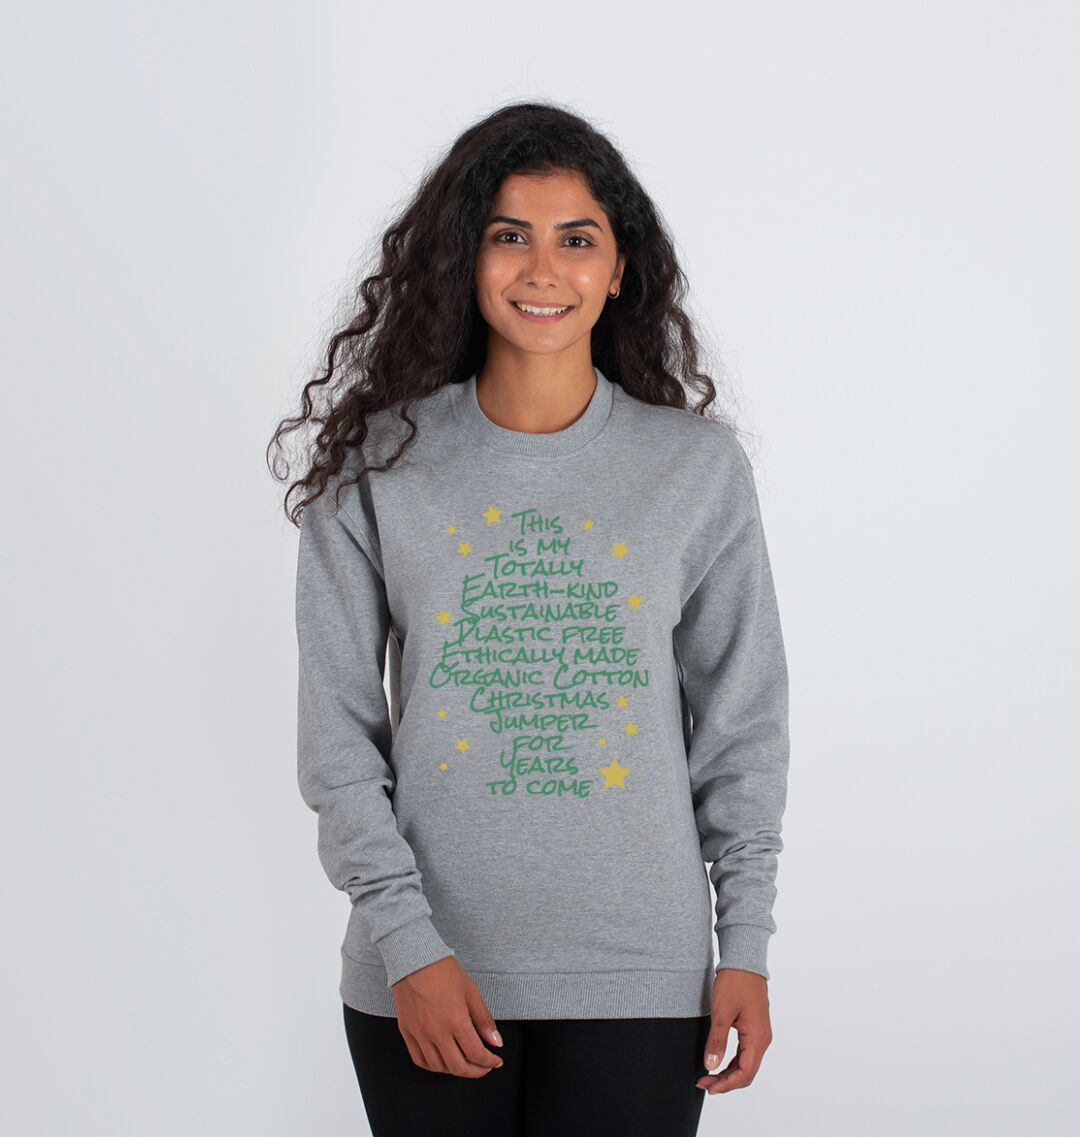 Eco friendly sustainable christmas jumper womens grey